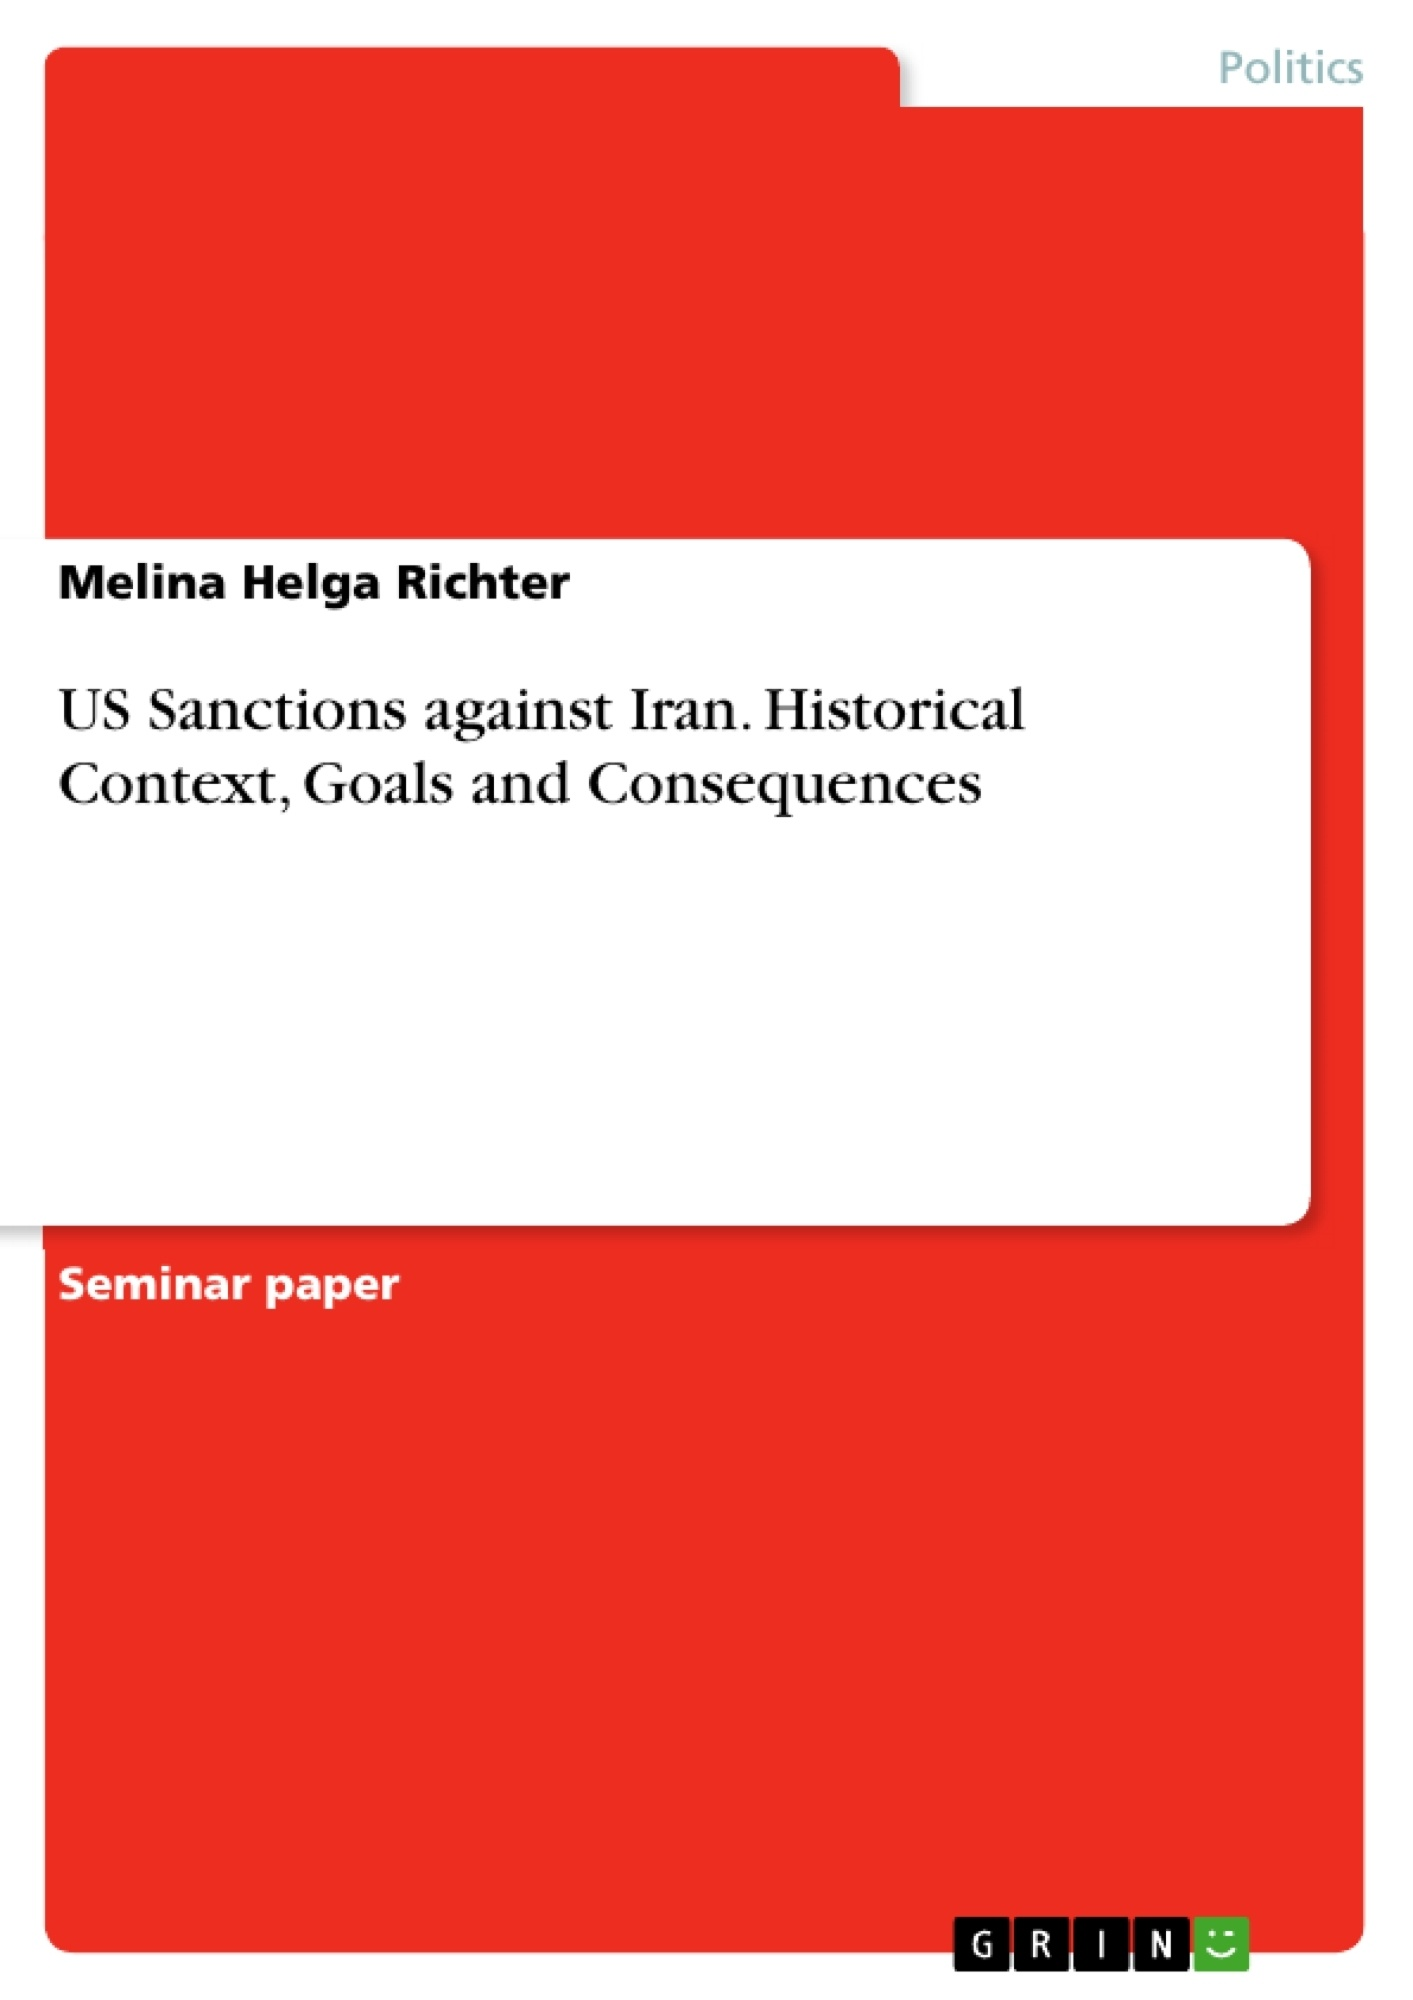 Title: US Sanctions against Iran. Historical Context, Goals and Consequences